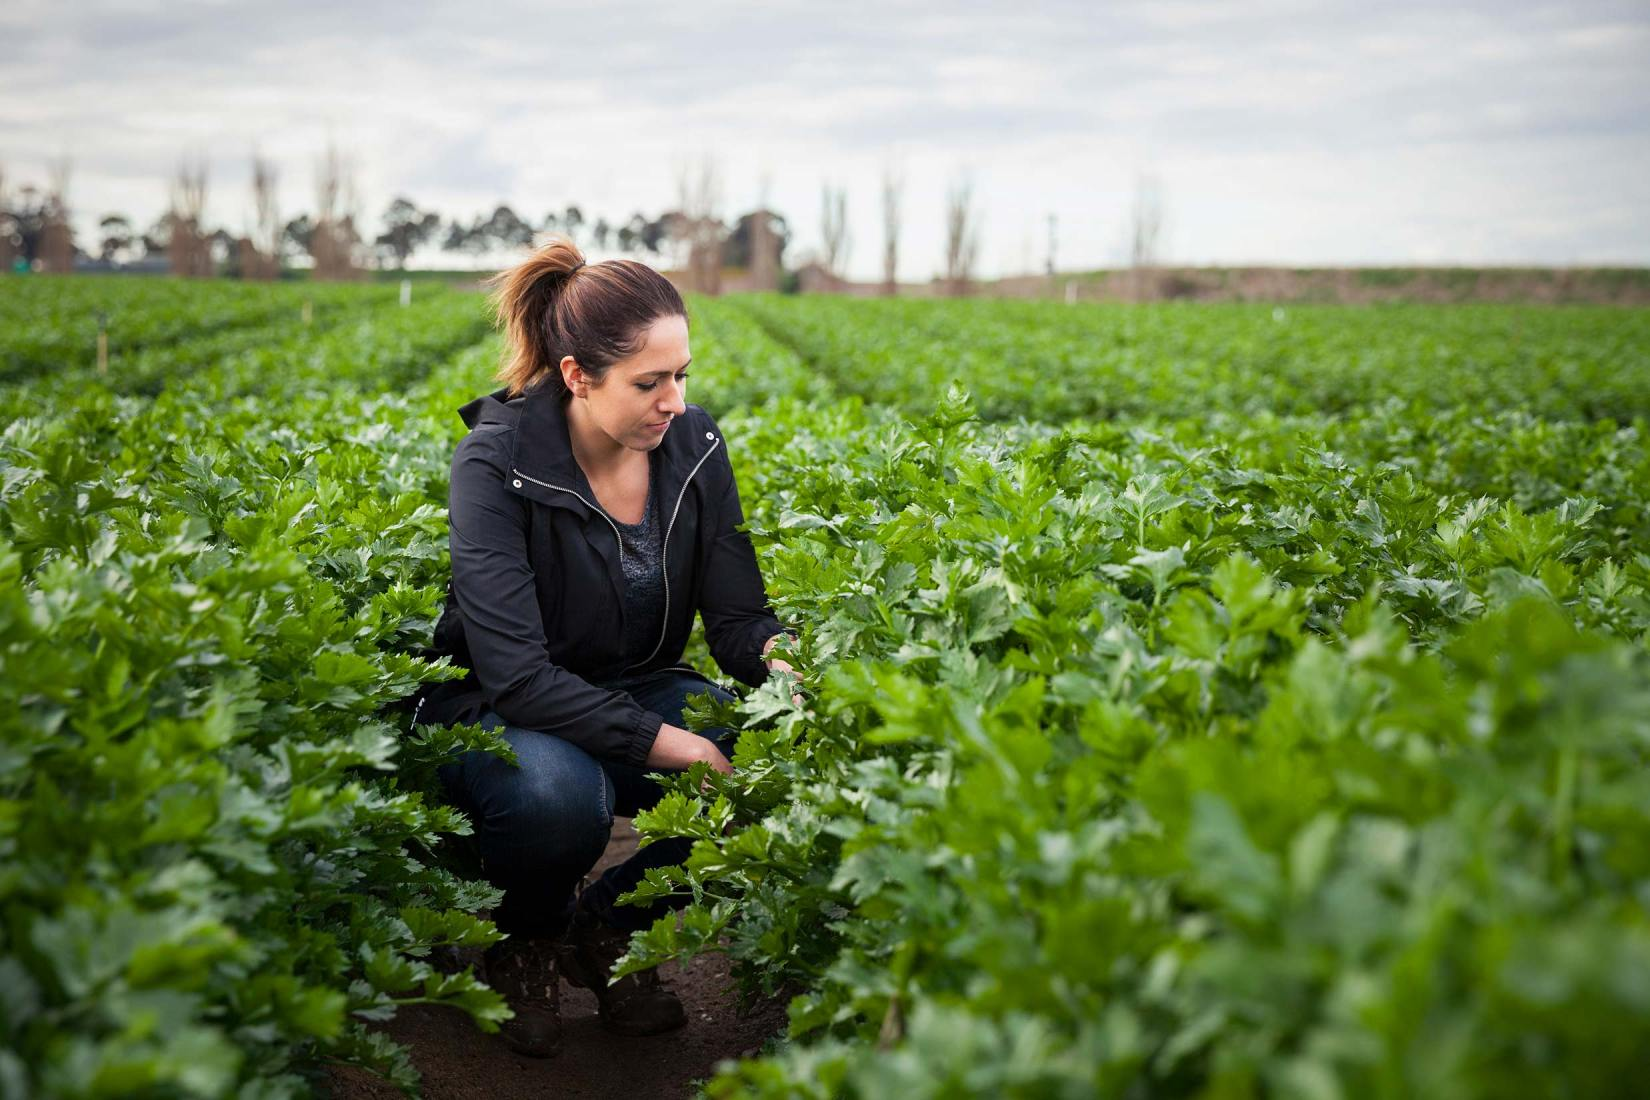 Vegetable biosecurity expert, Dr Jessica Lye